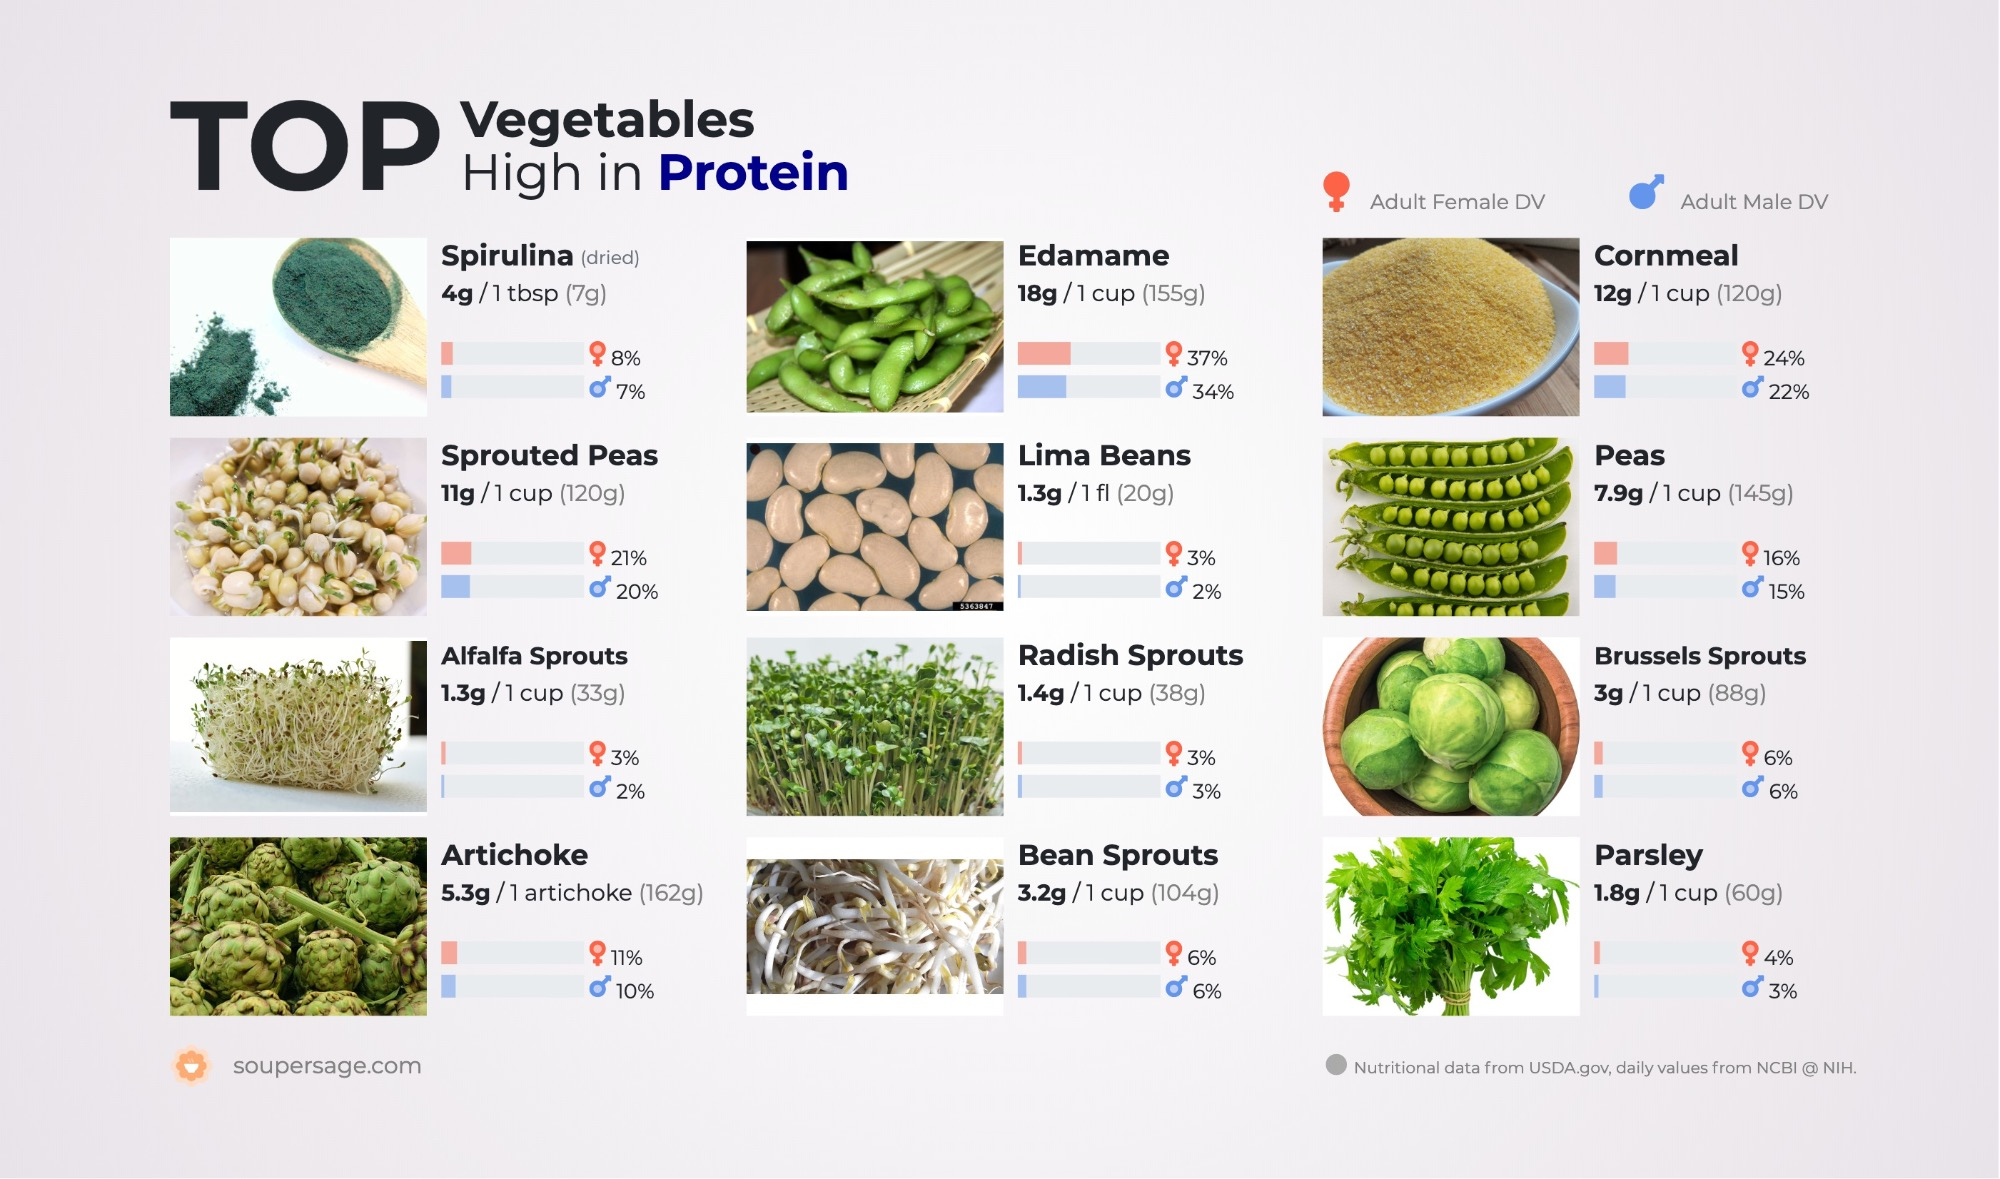 image of Top Vegetables High in Protein